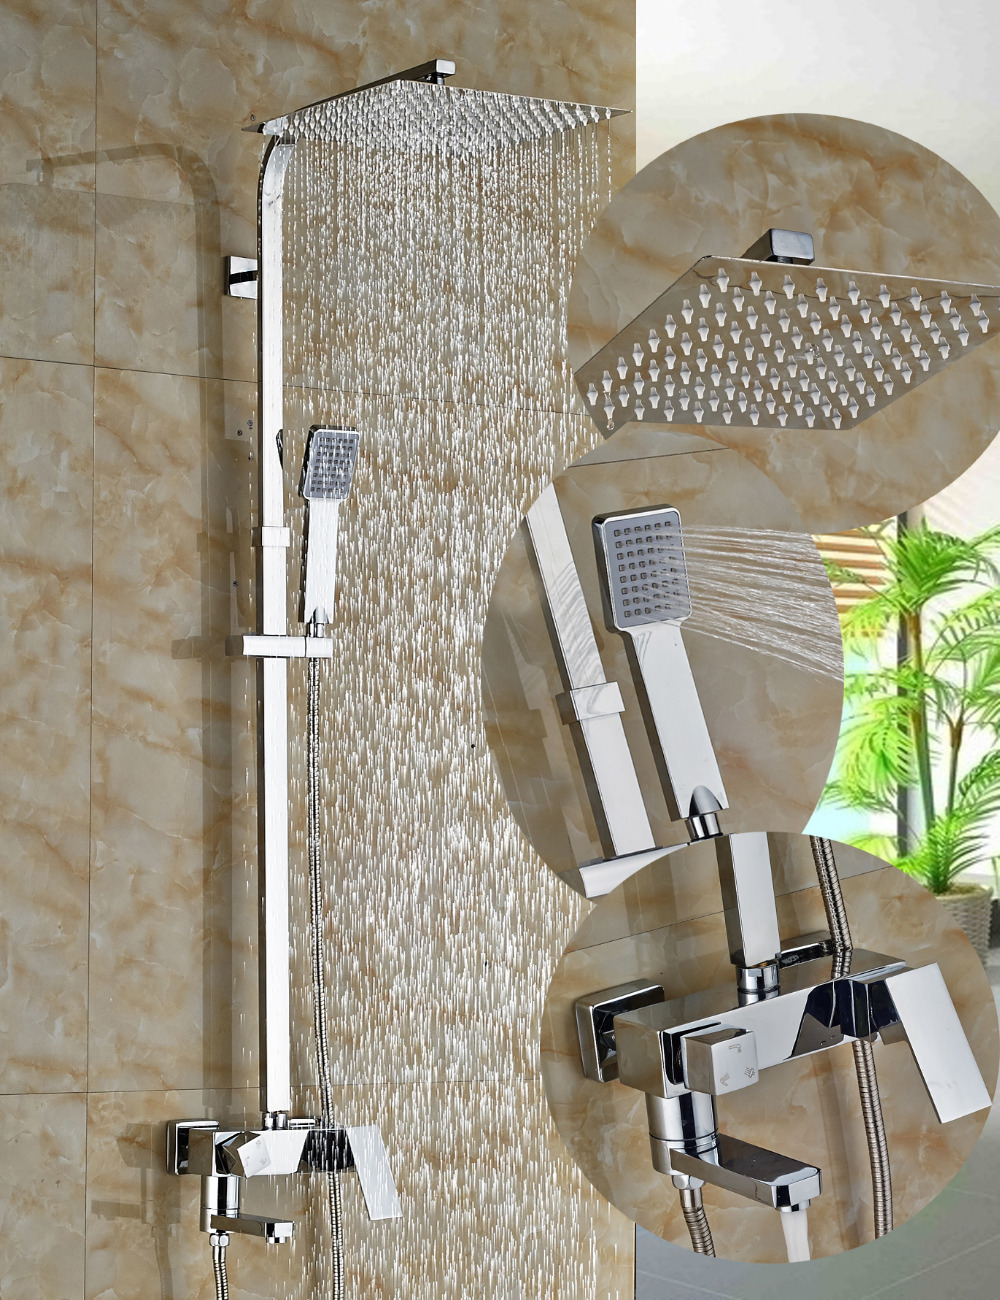 Wholesale And Retail Polished Chrome Square Shower Head Shower Mixer Tap Hot Cold Mixer Valve W/ Hand Shower Sprayer